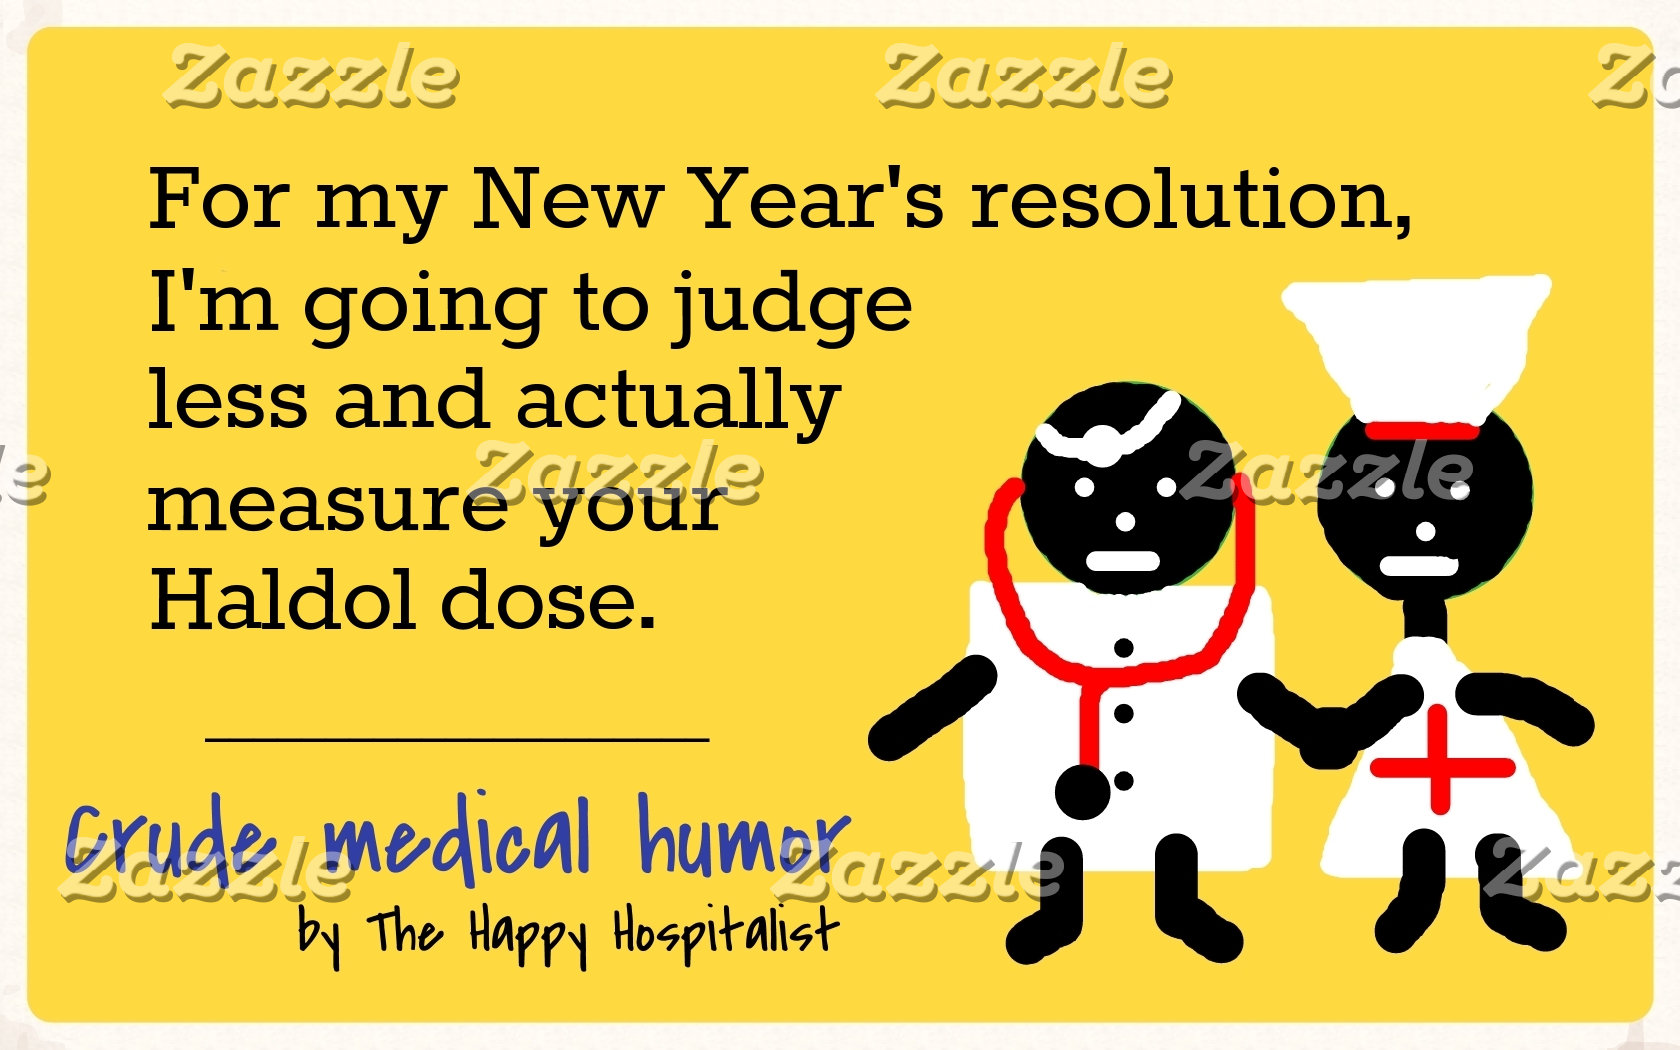 For my New Year's resolution, I'm going to judge..